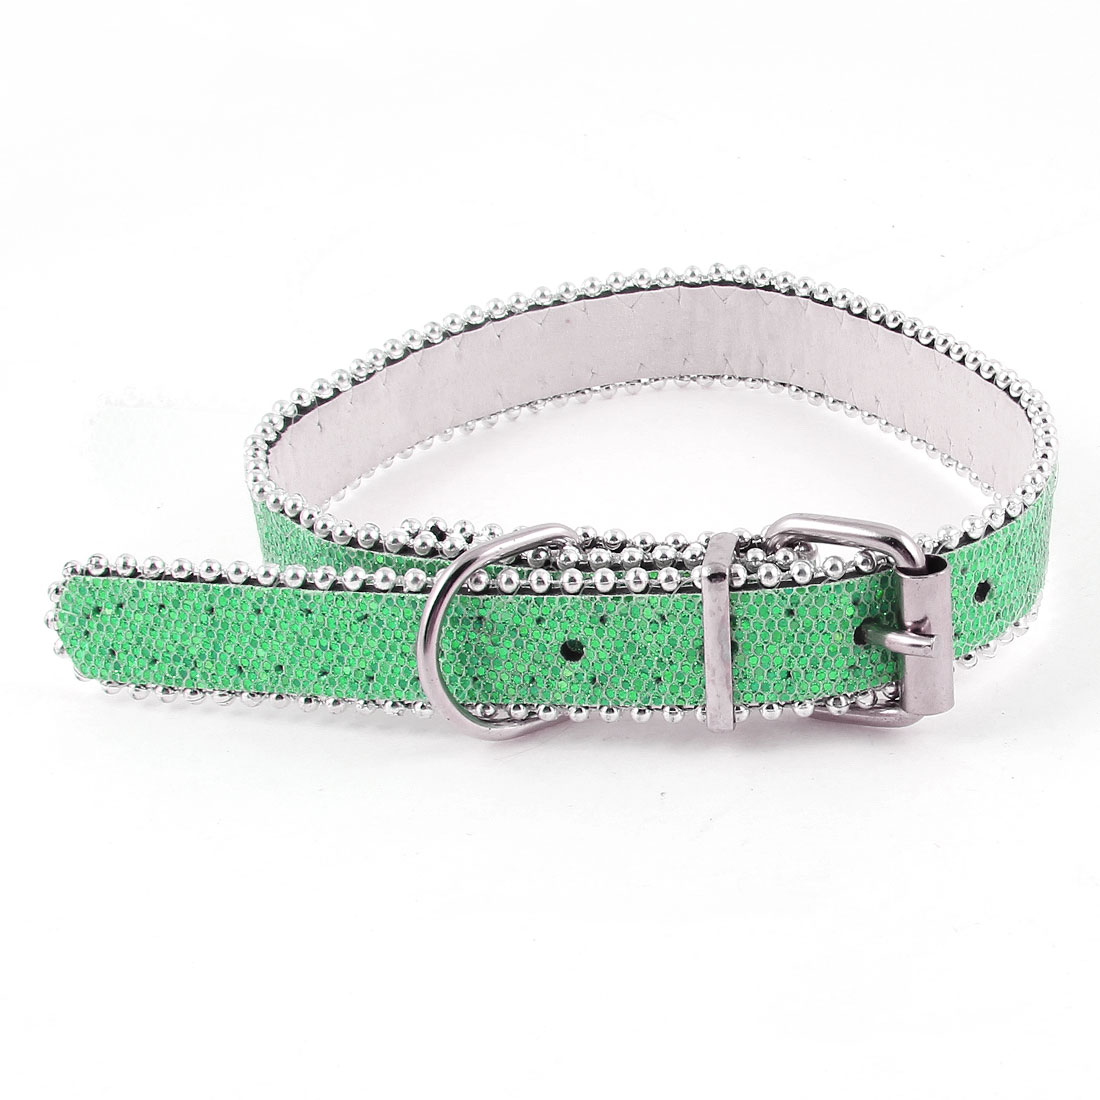 One Pin Buckle 5 Holes Glitter Powder Decor Belt Cat Dog Pets Neck Collar Green